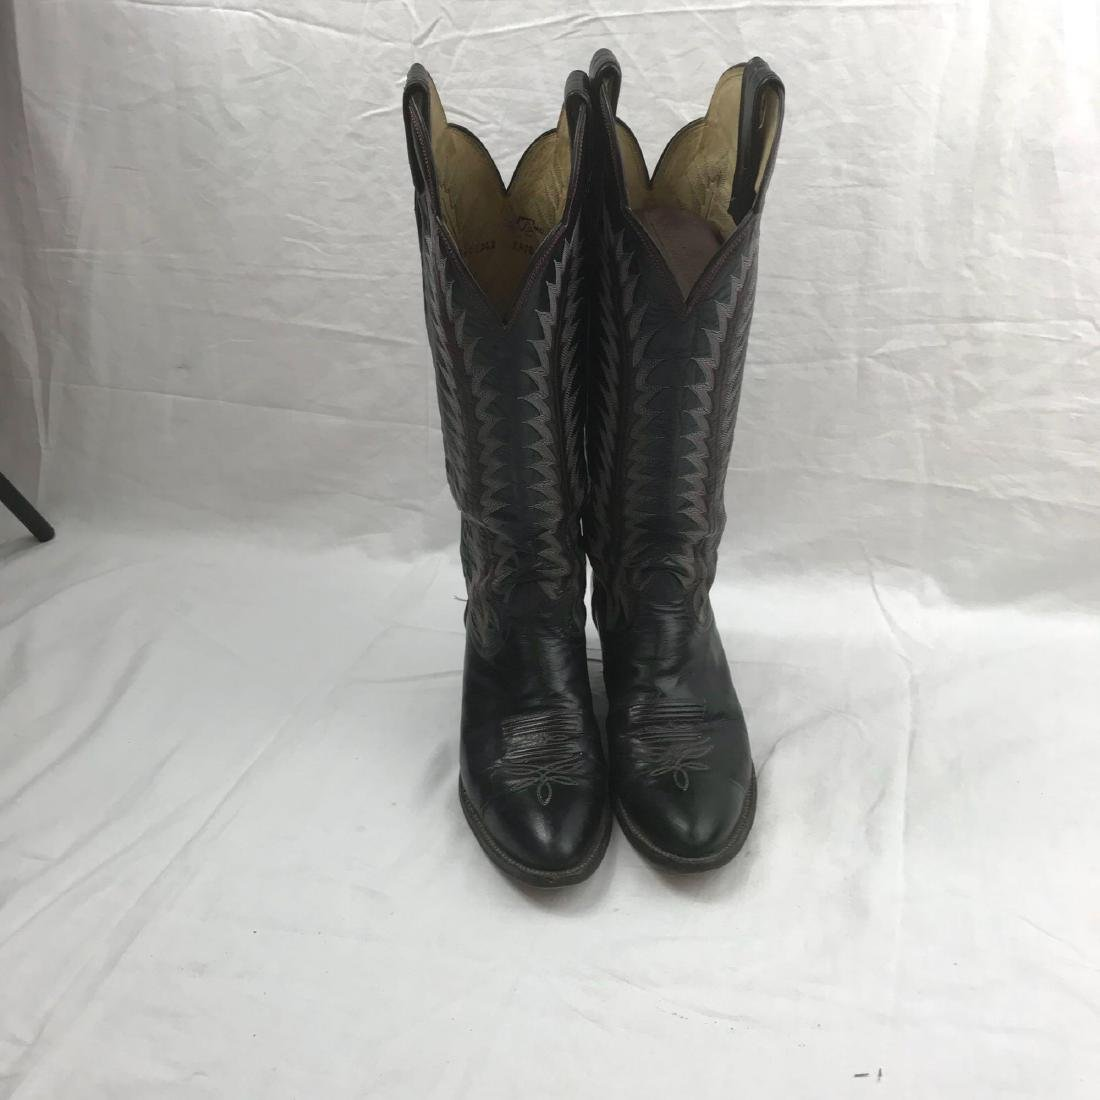 Tony Lama size 8 Cowgirl Boots - 2